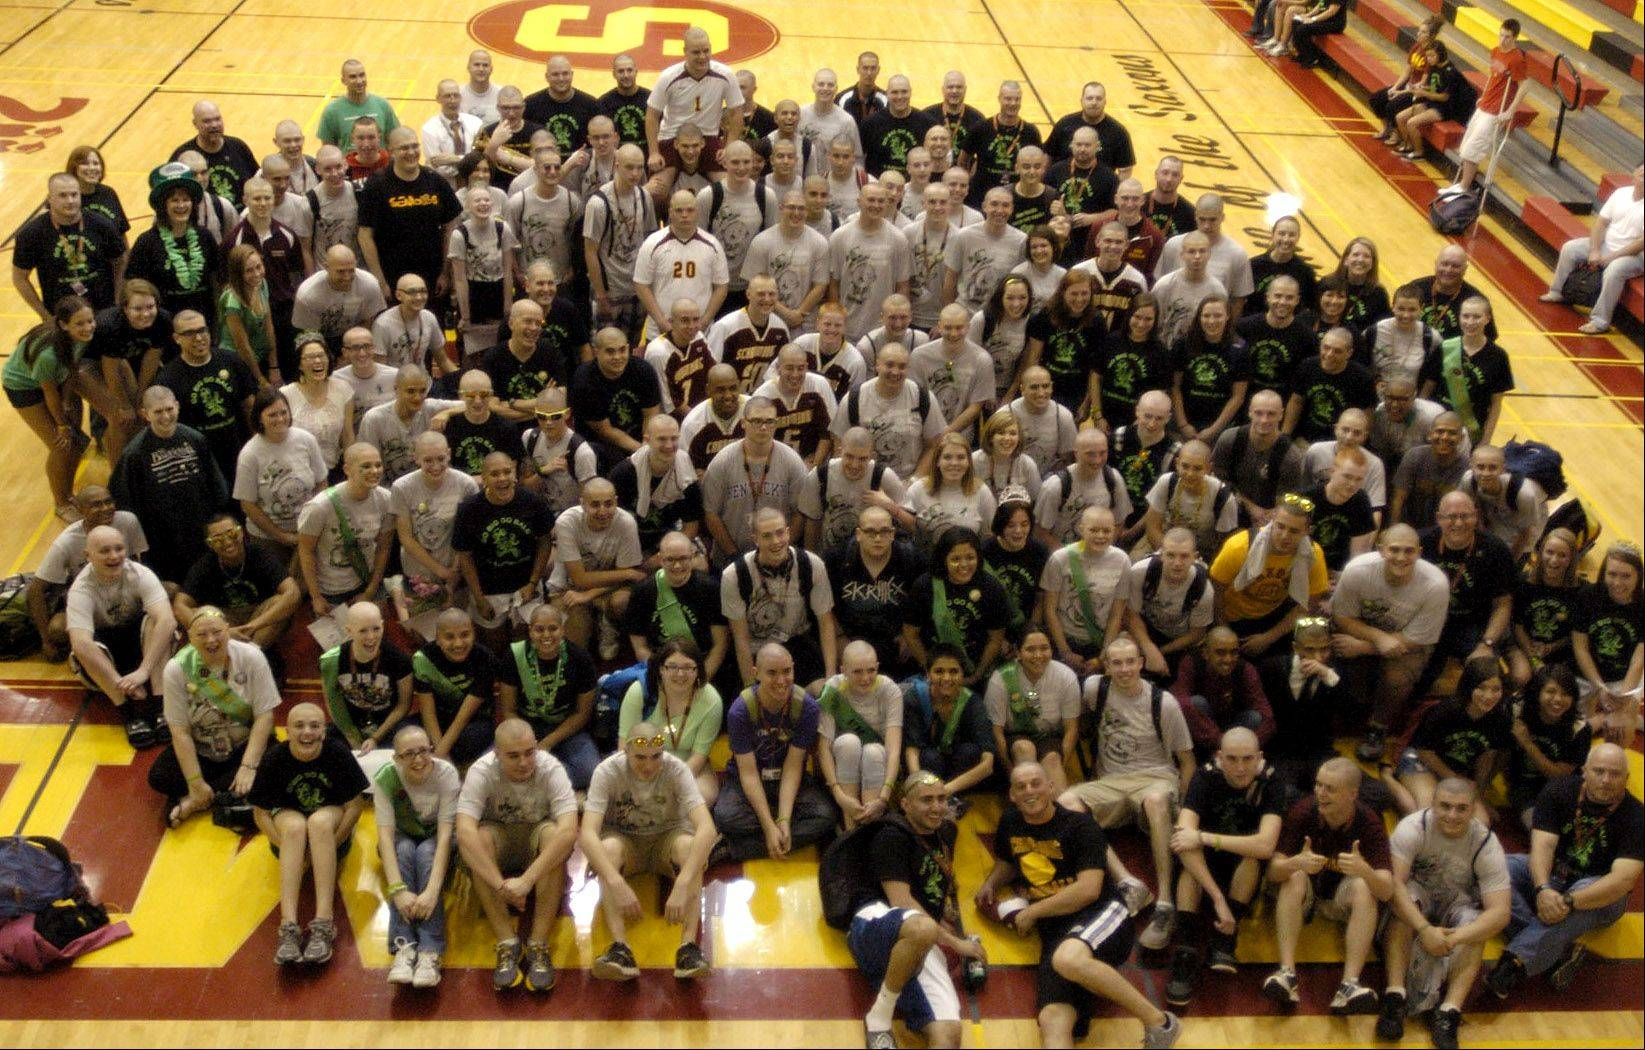 Everyone who got their head shaved pose for a shot on the gym floor after the St. Baldrick's head shaving event at Schaumburg High School.